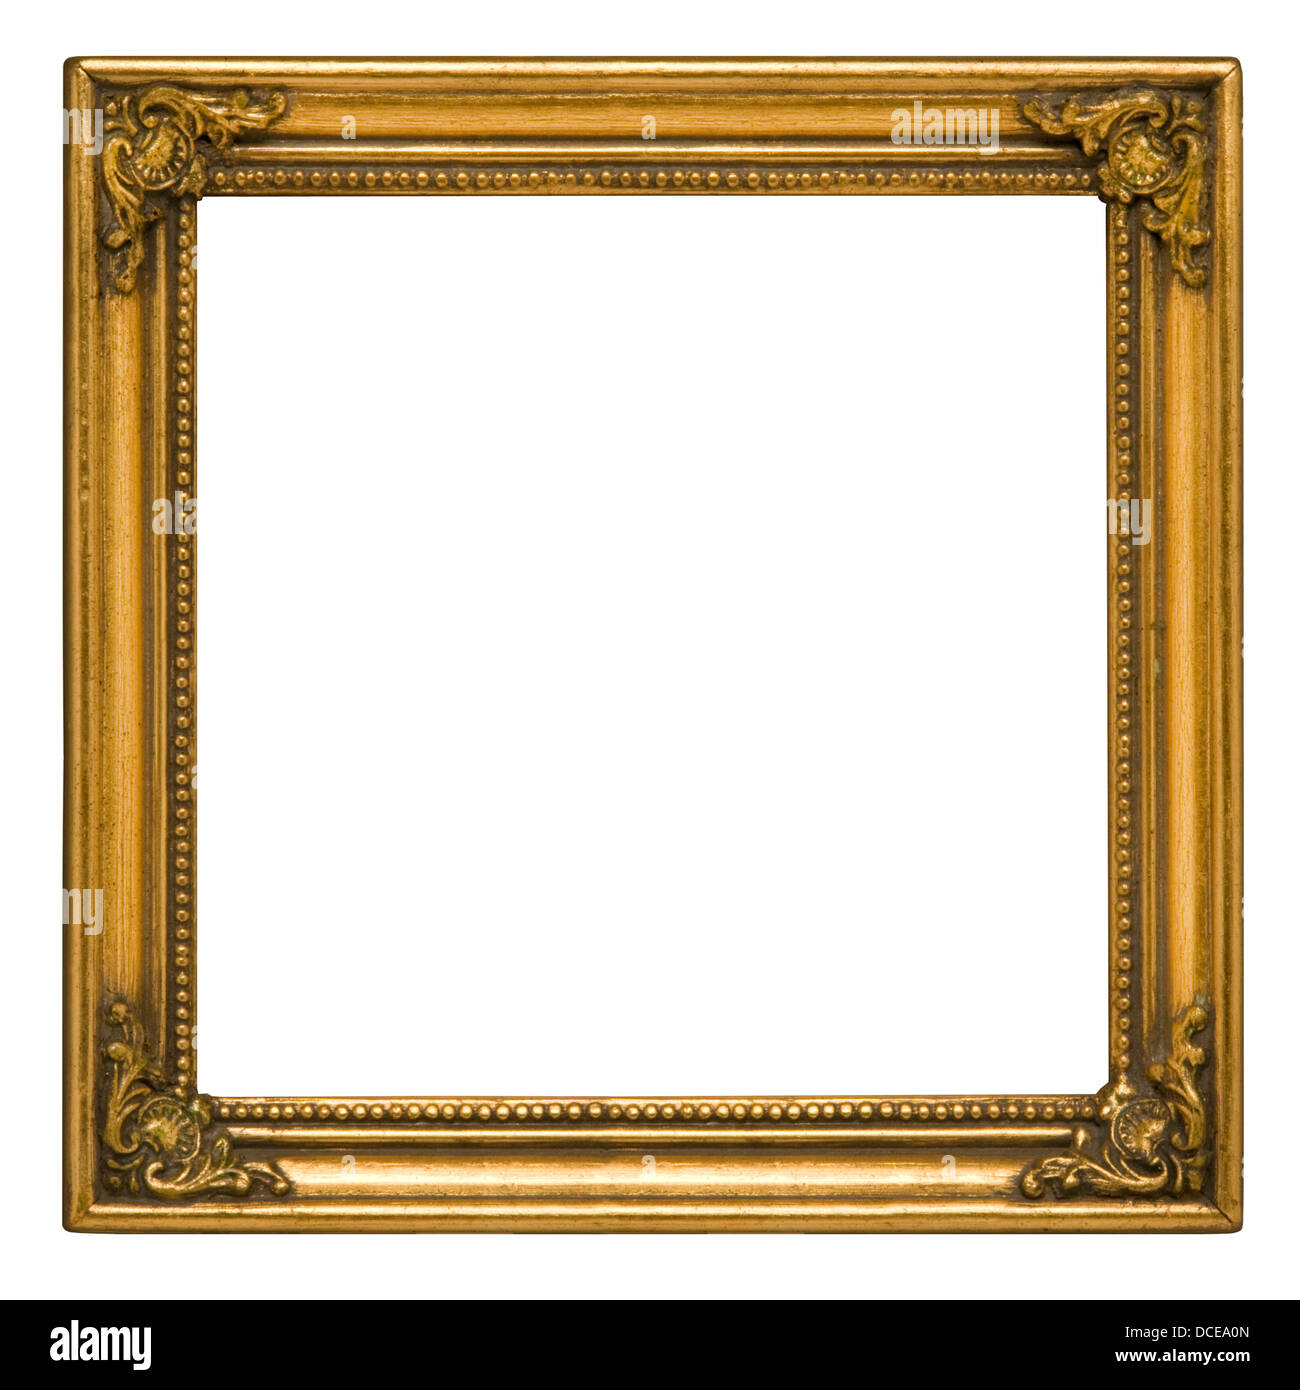 Antique square picture frame painted gold against white background - Stock Image